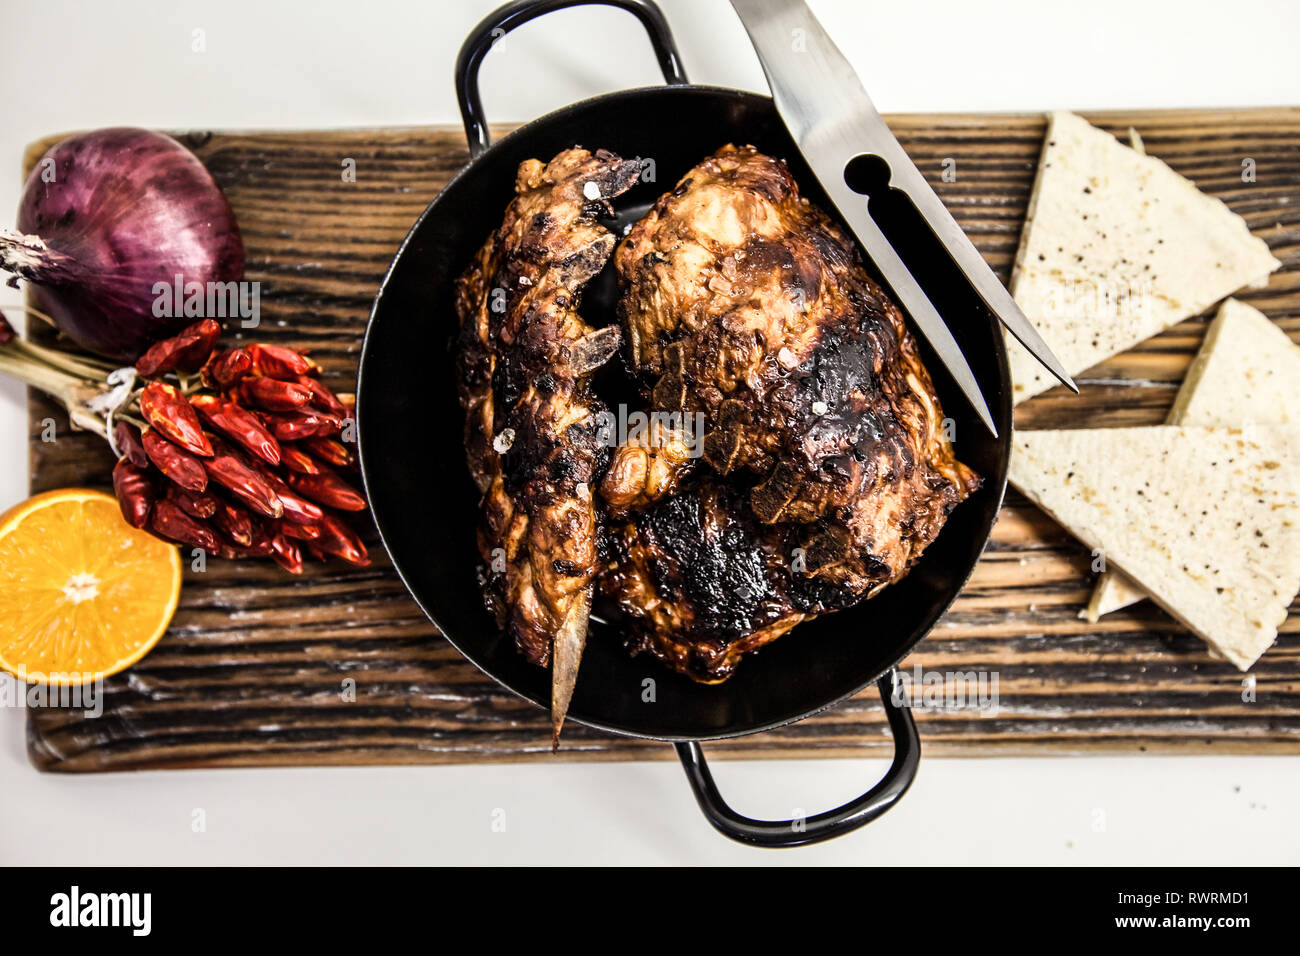 Barbecue pork spare ribs as top view on an old wood board Stock Photo